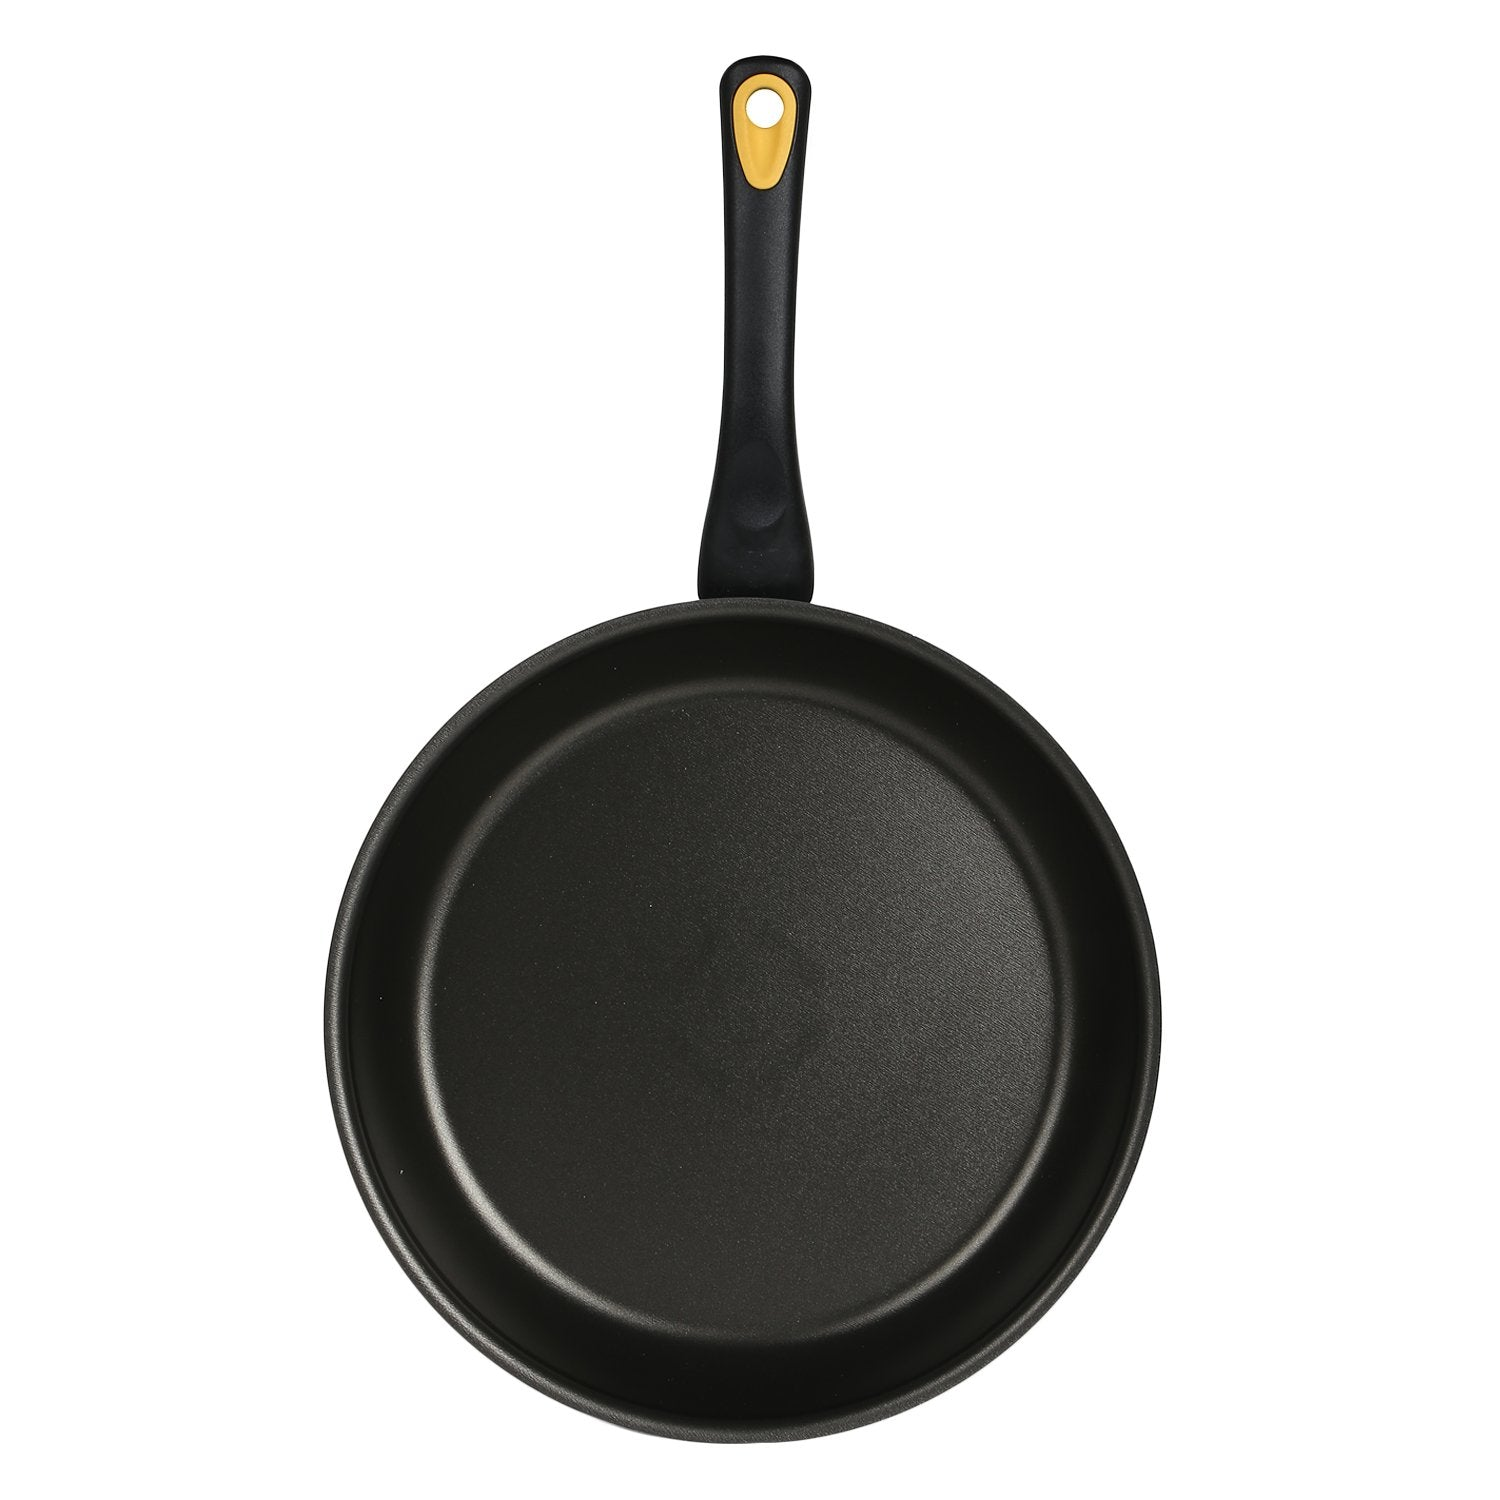 Skyline Non-Stick Frypan 26cm, Grey - Pots and Pans